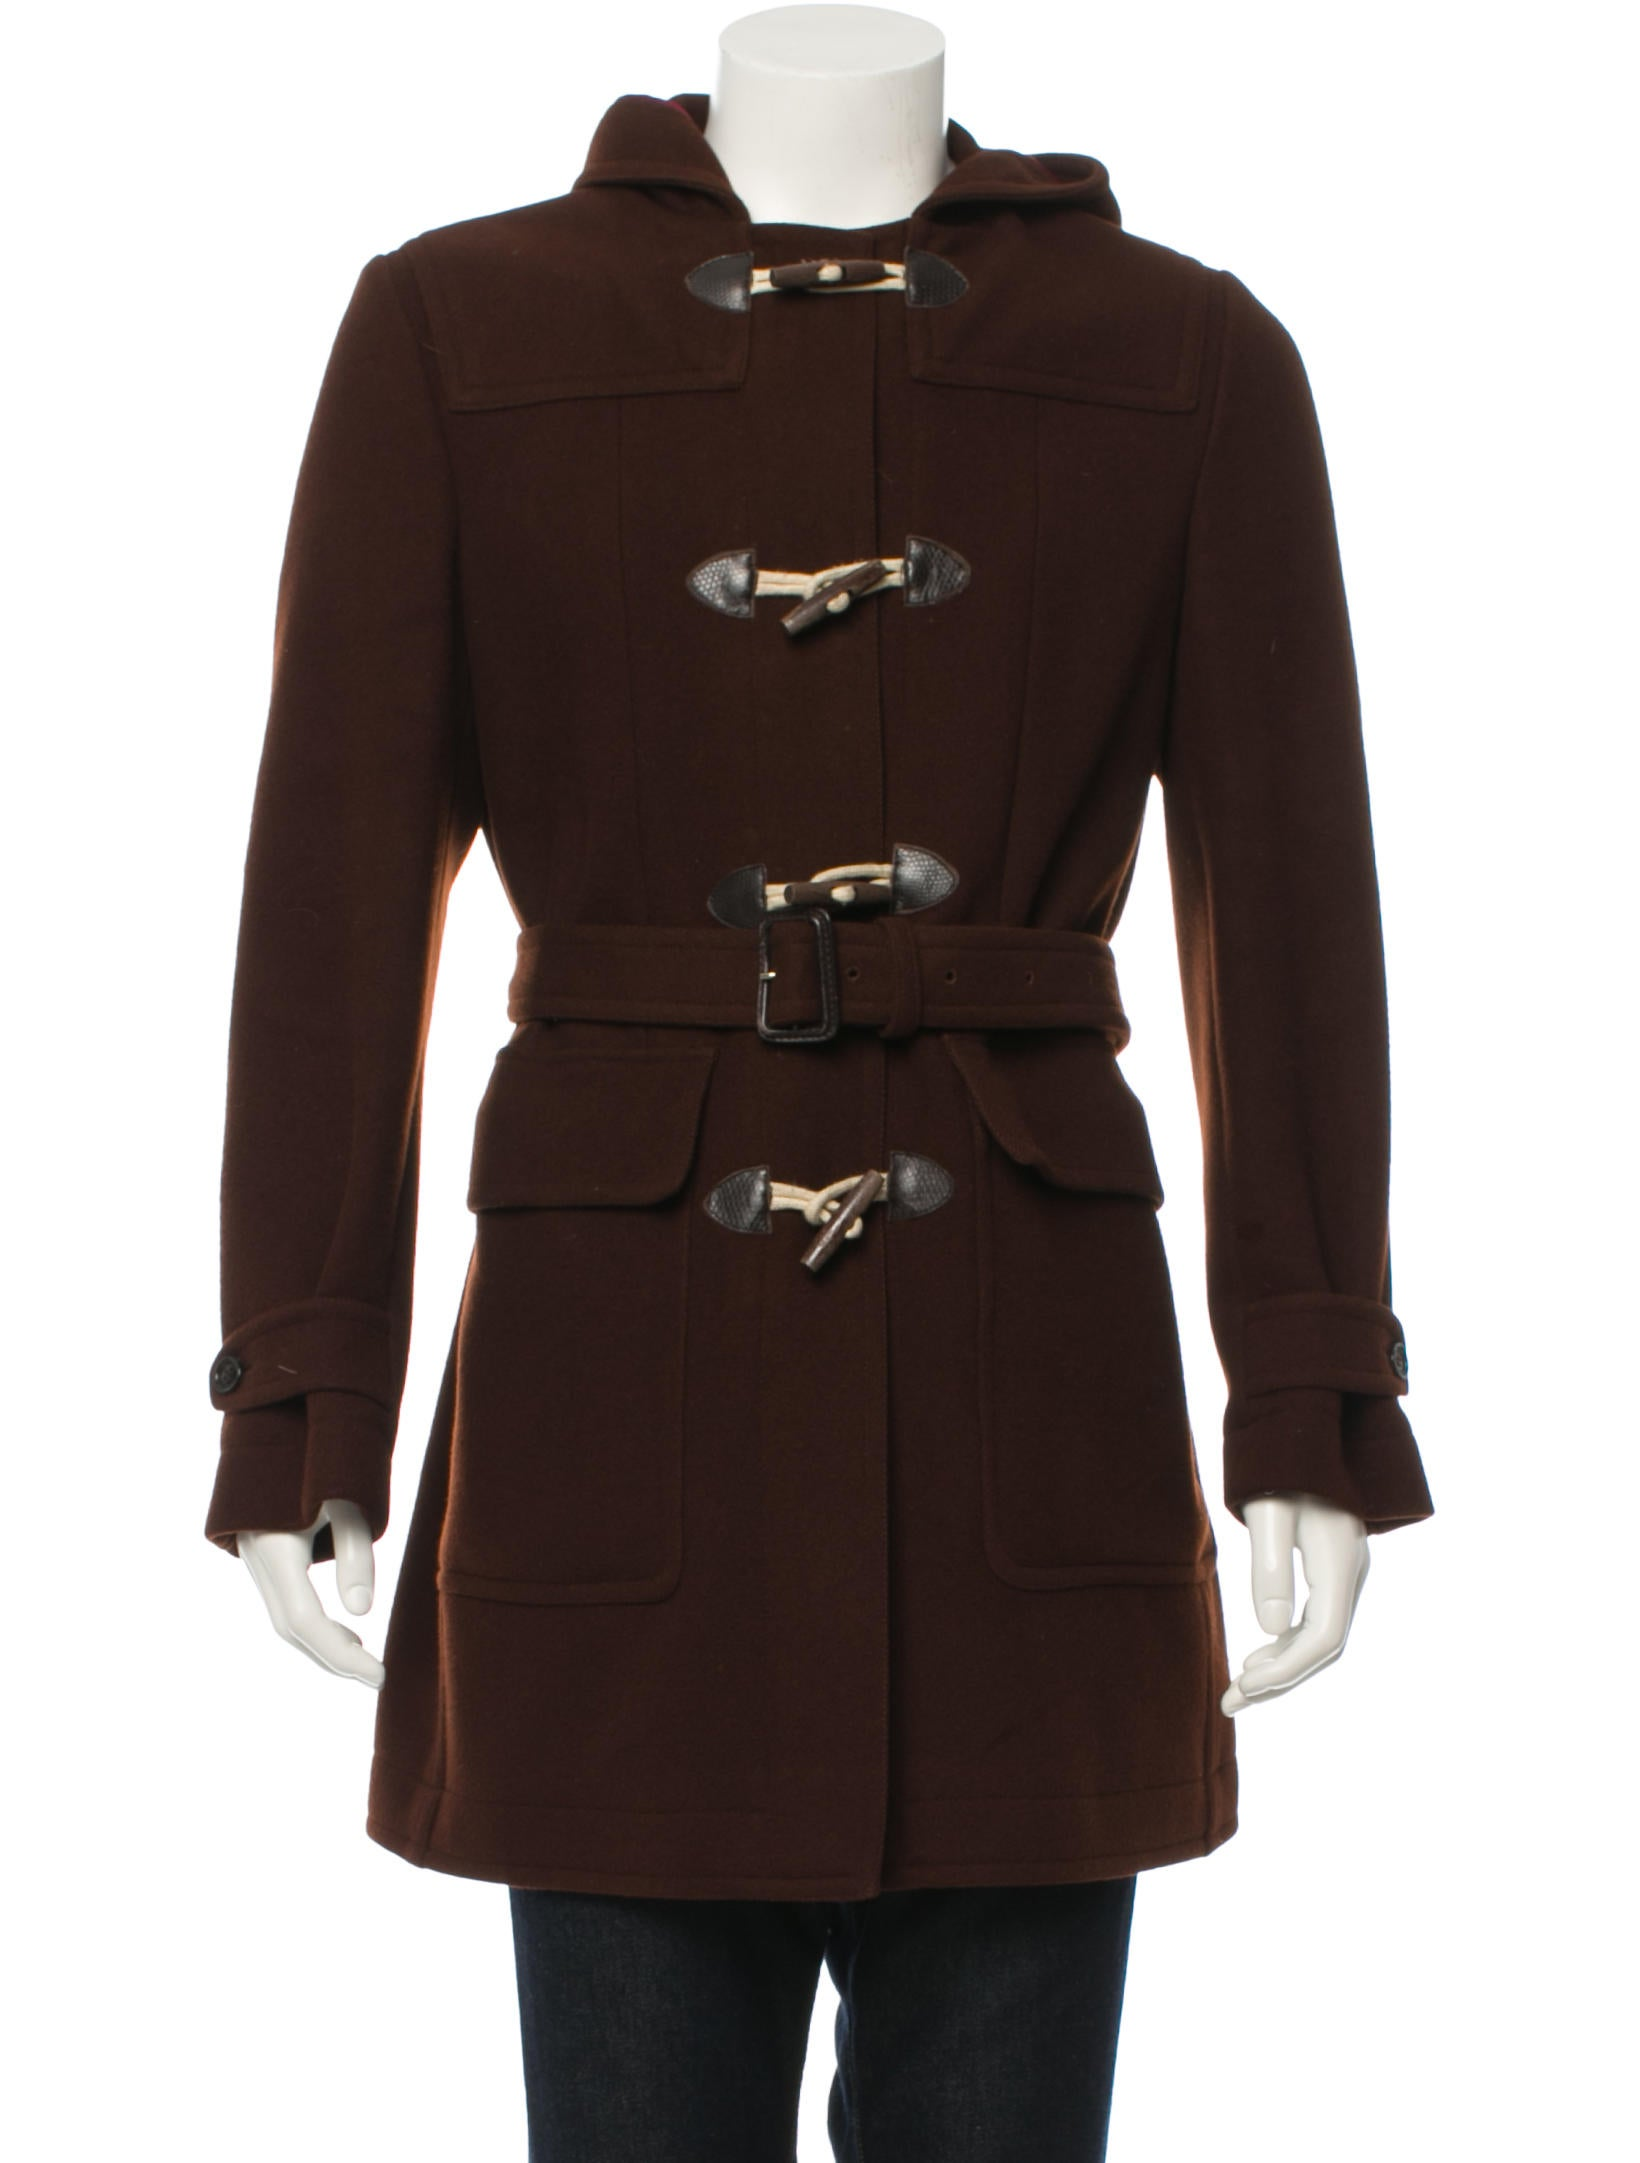 Shop for and buy toggle coat online at Macy's. Find toggle coat at Macy's.